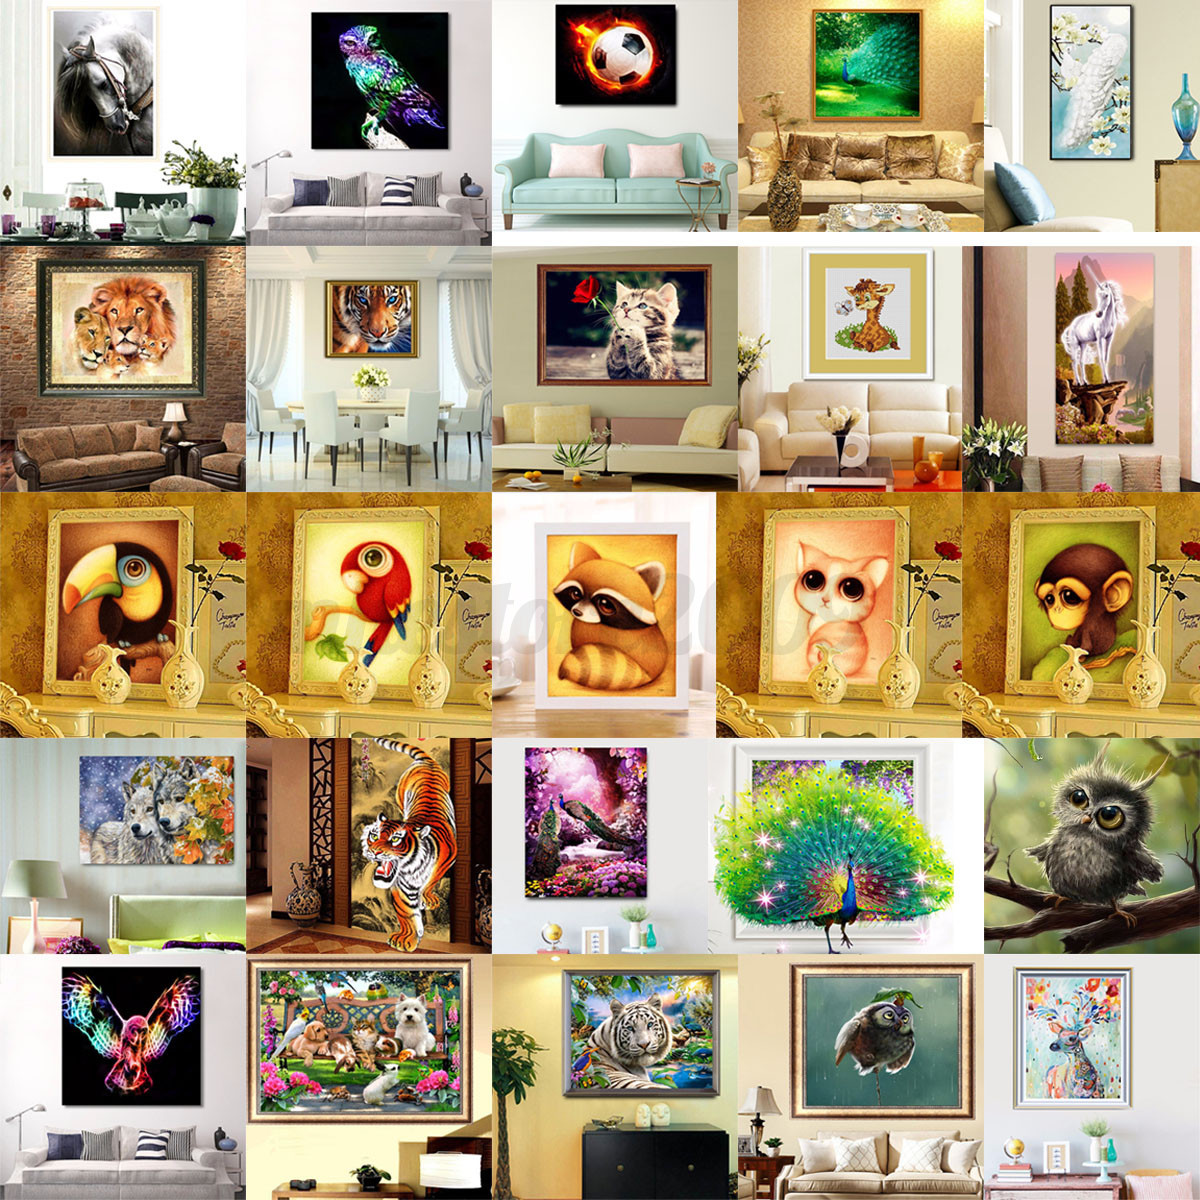 Diy 5d Diamond Painting Animal Embroidery Cross Crafts Stitch Home Decor Kits Ebay